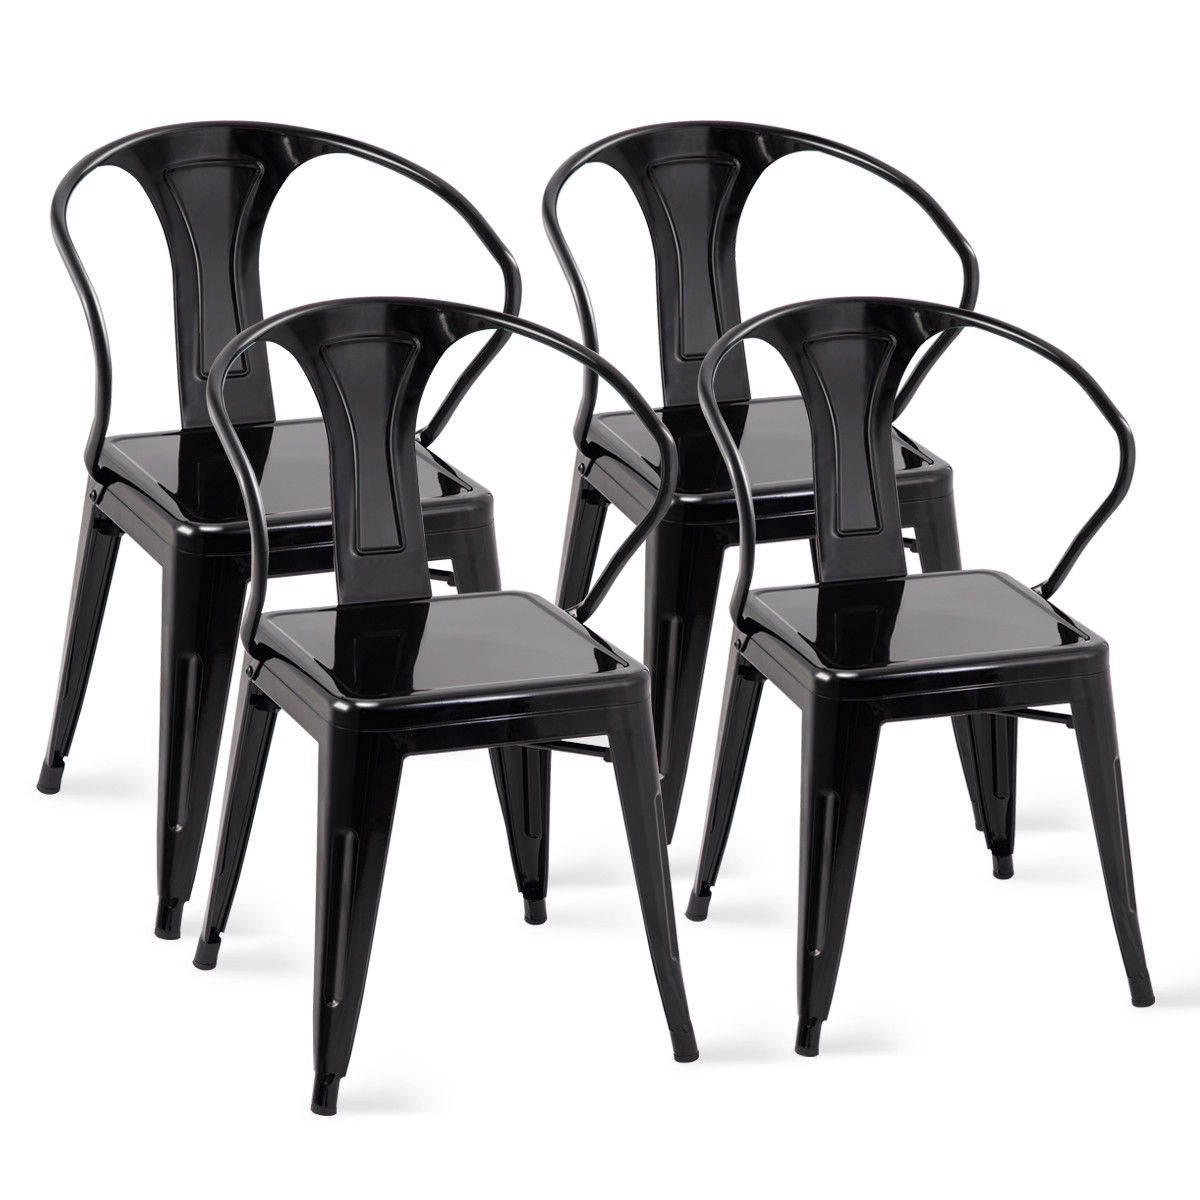 Set Of 4 Kitchen Chairs Costway Set Of 4 Tolix Style Metal Chairs Arm Chair